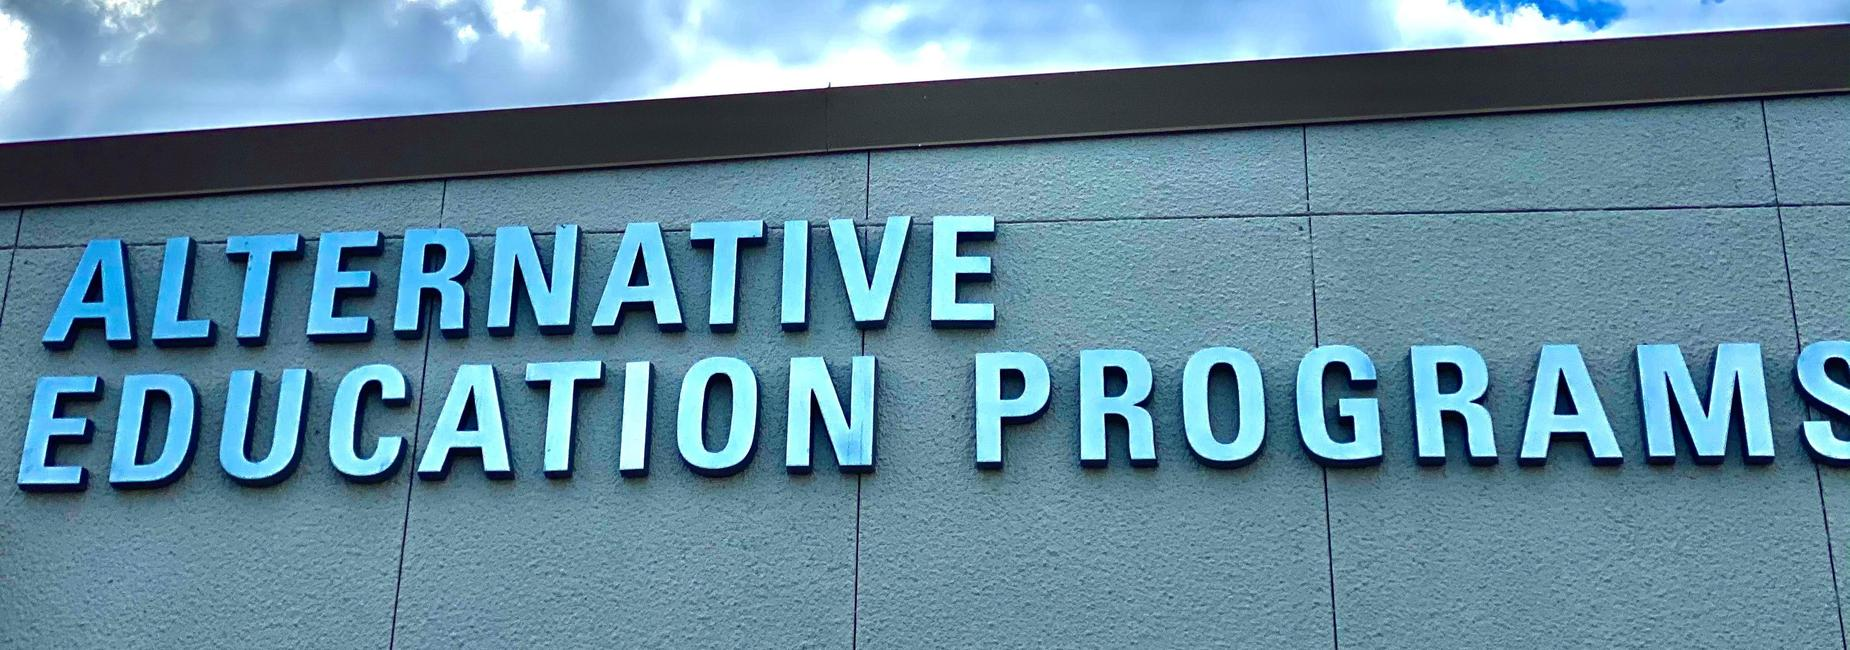 alternative education programs sign outside